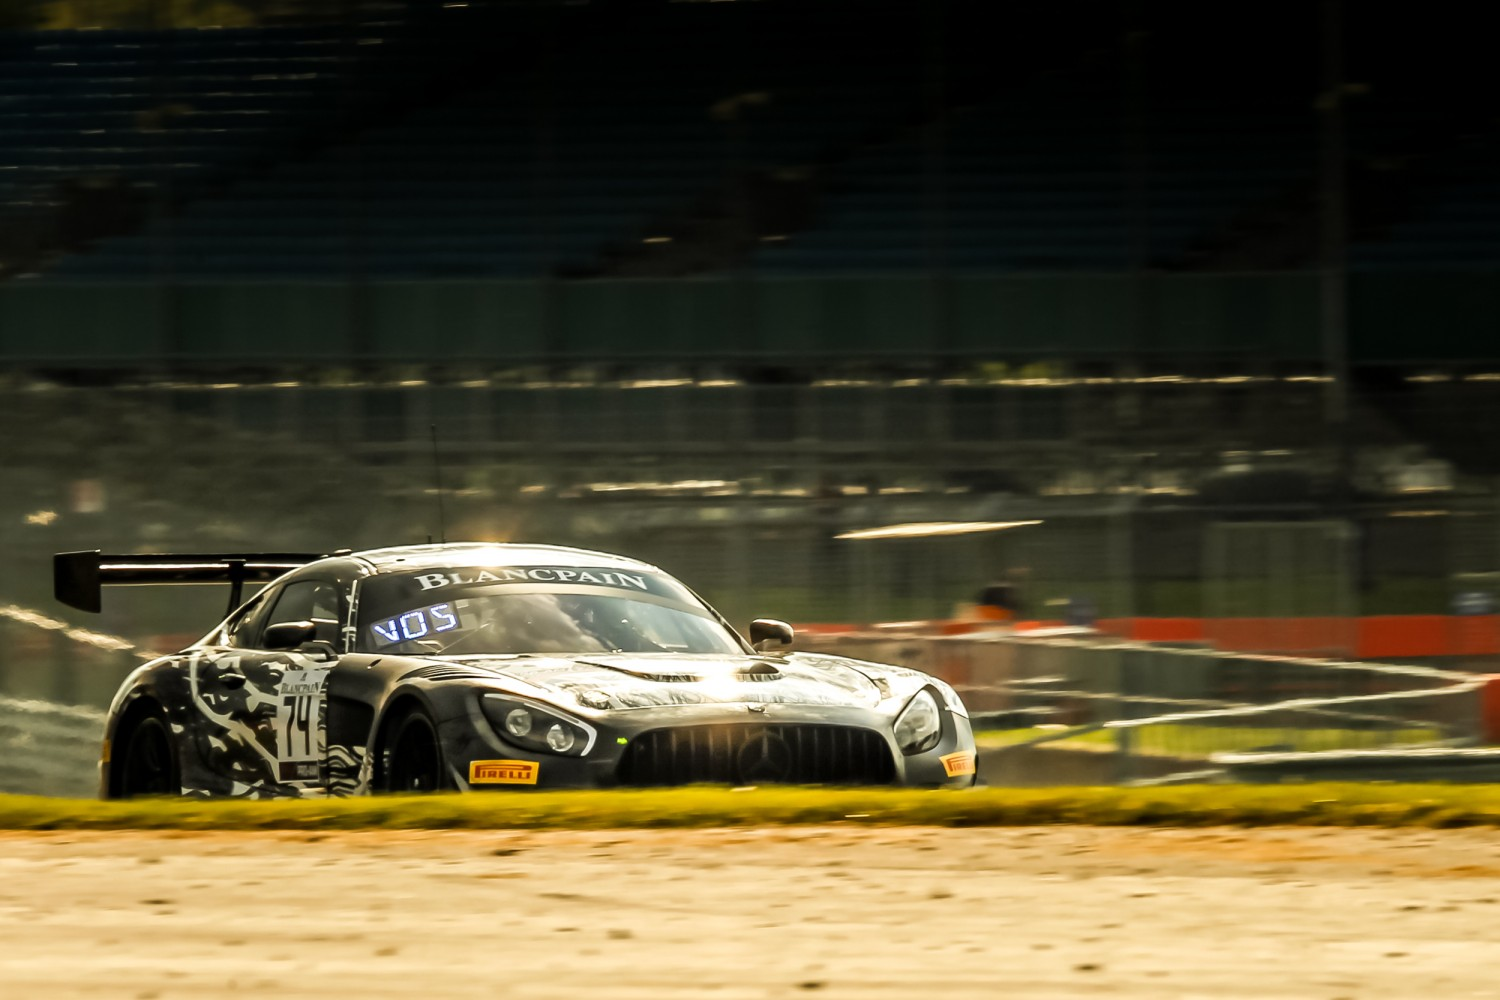 #74 Ram Racing GBR Mercedes-AMG GT3 Remon Vos NDL - - Tom Onslow-Cole GBR Pro-Am Cup  | SRO / Patrick Hecq Photography